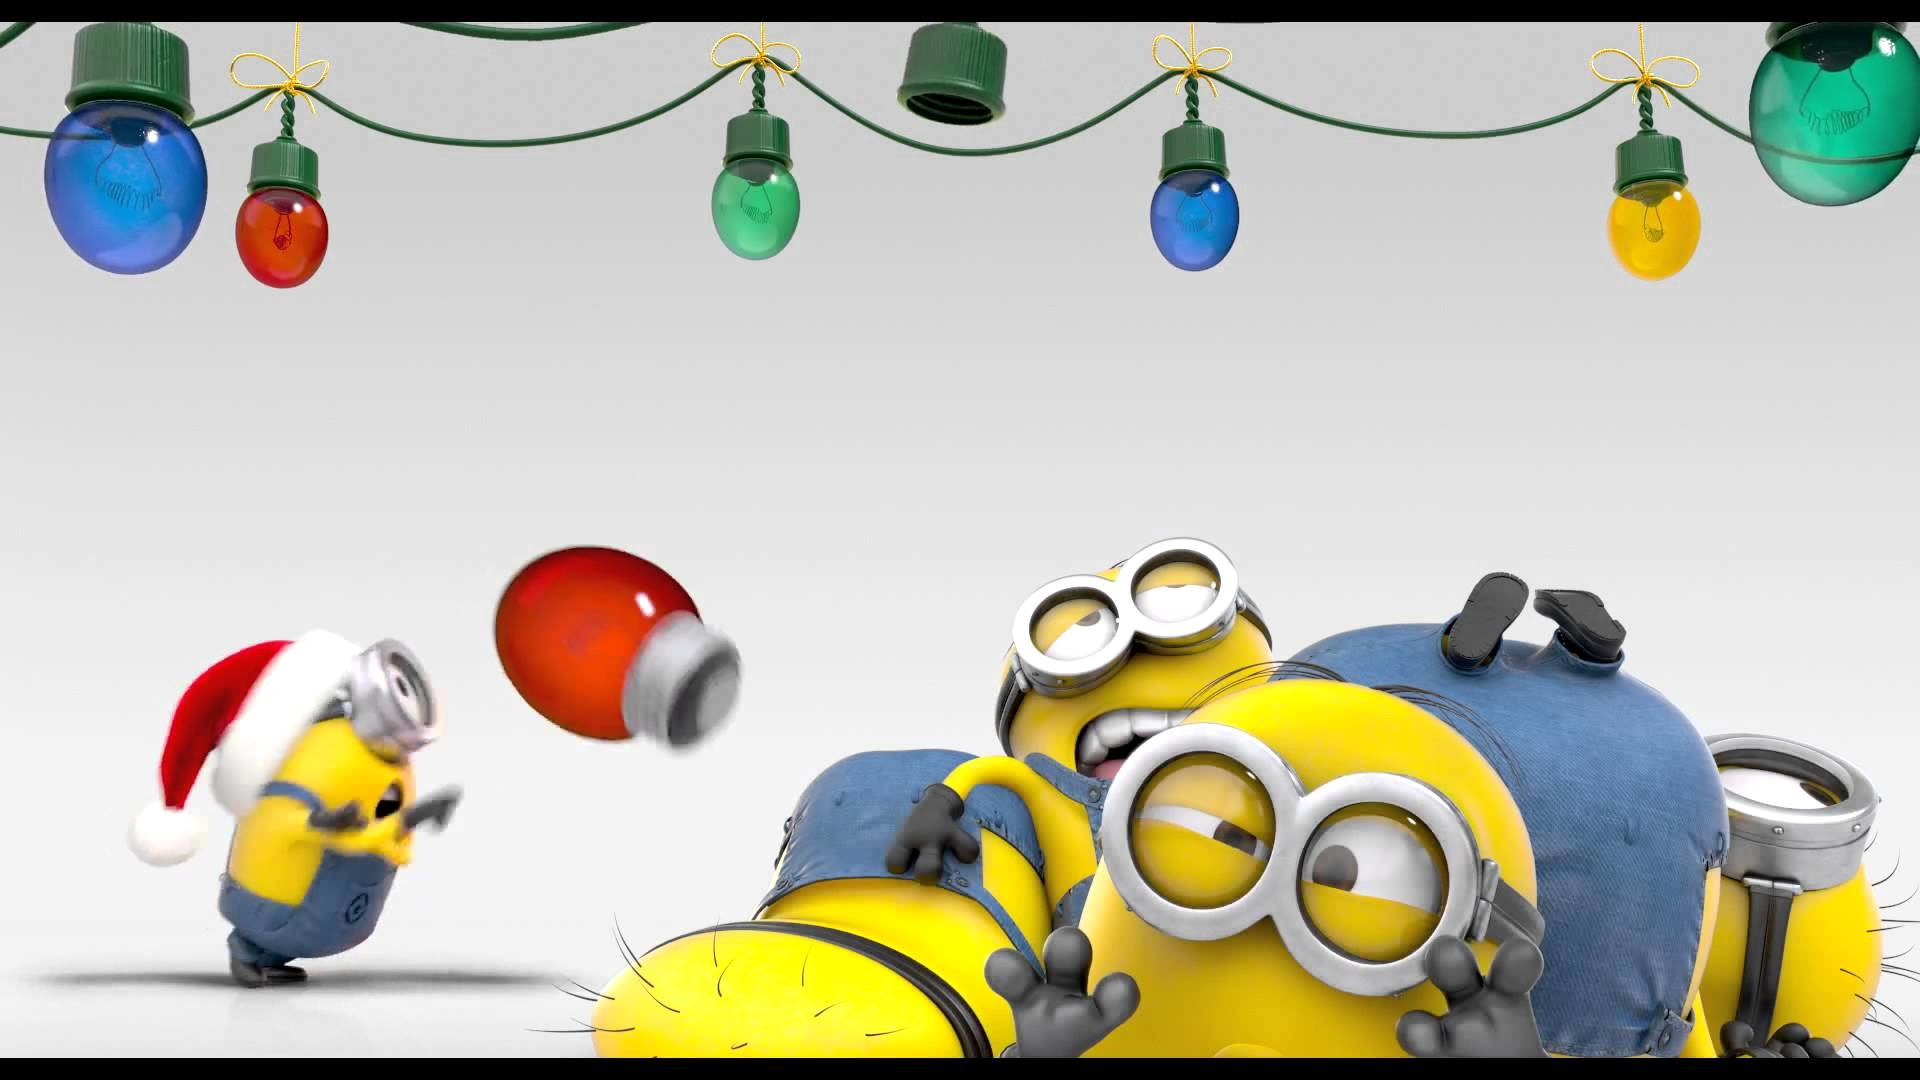 … minions christmas desktop wallpapers hd wallpapers gifs …